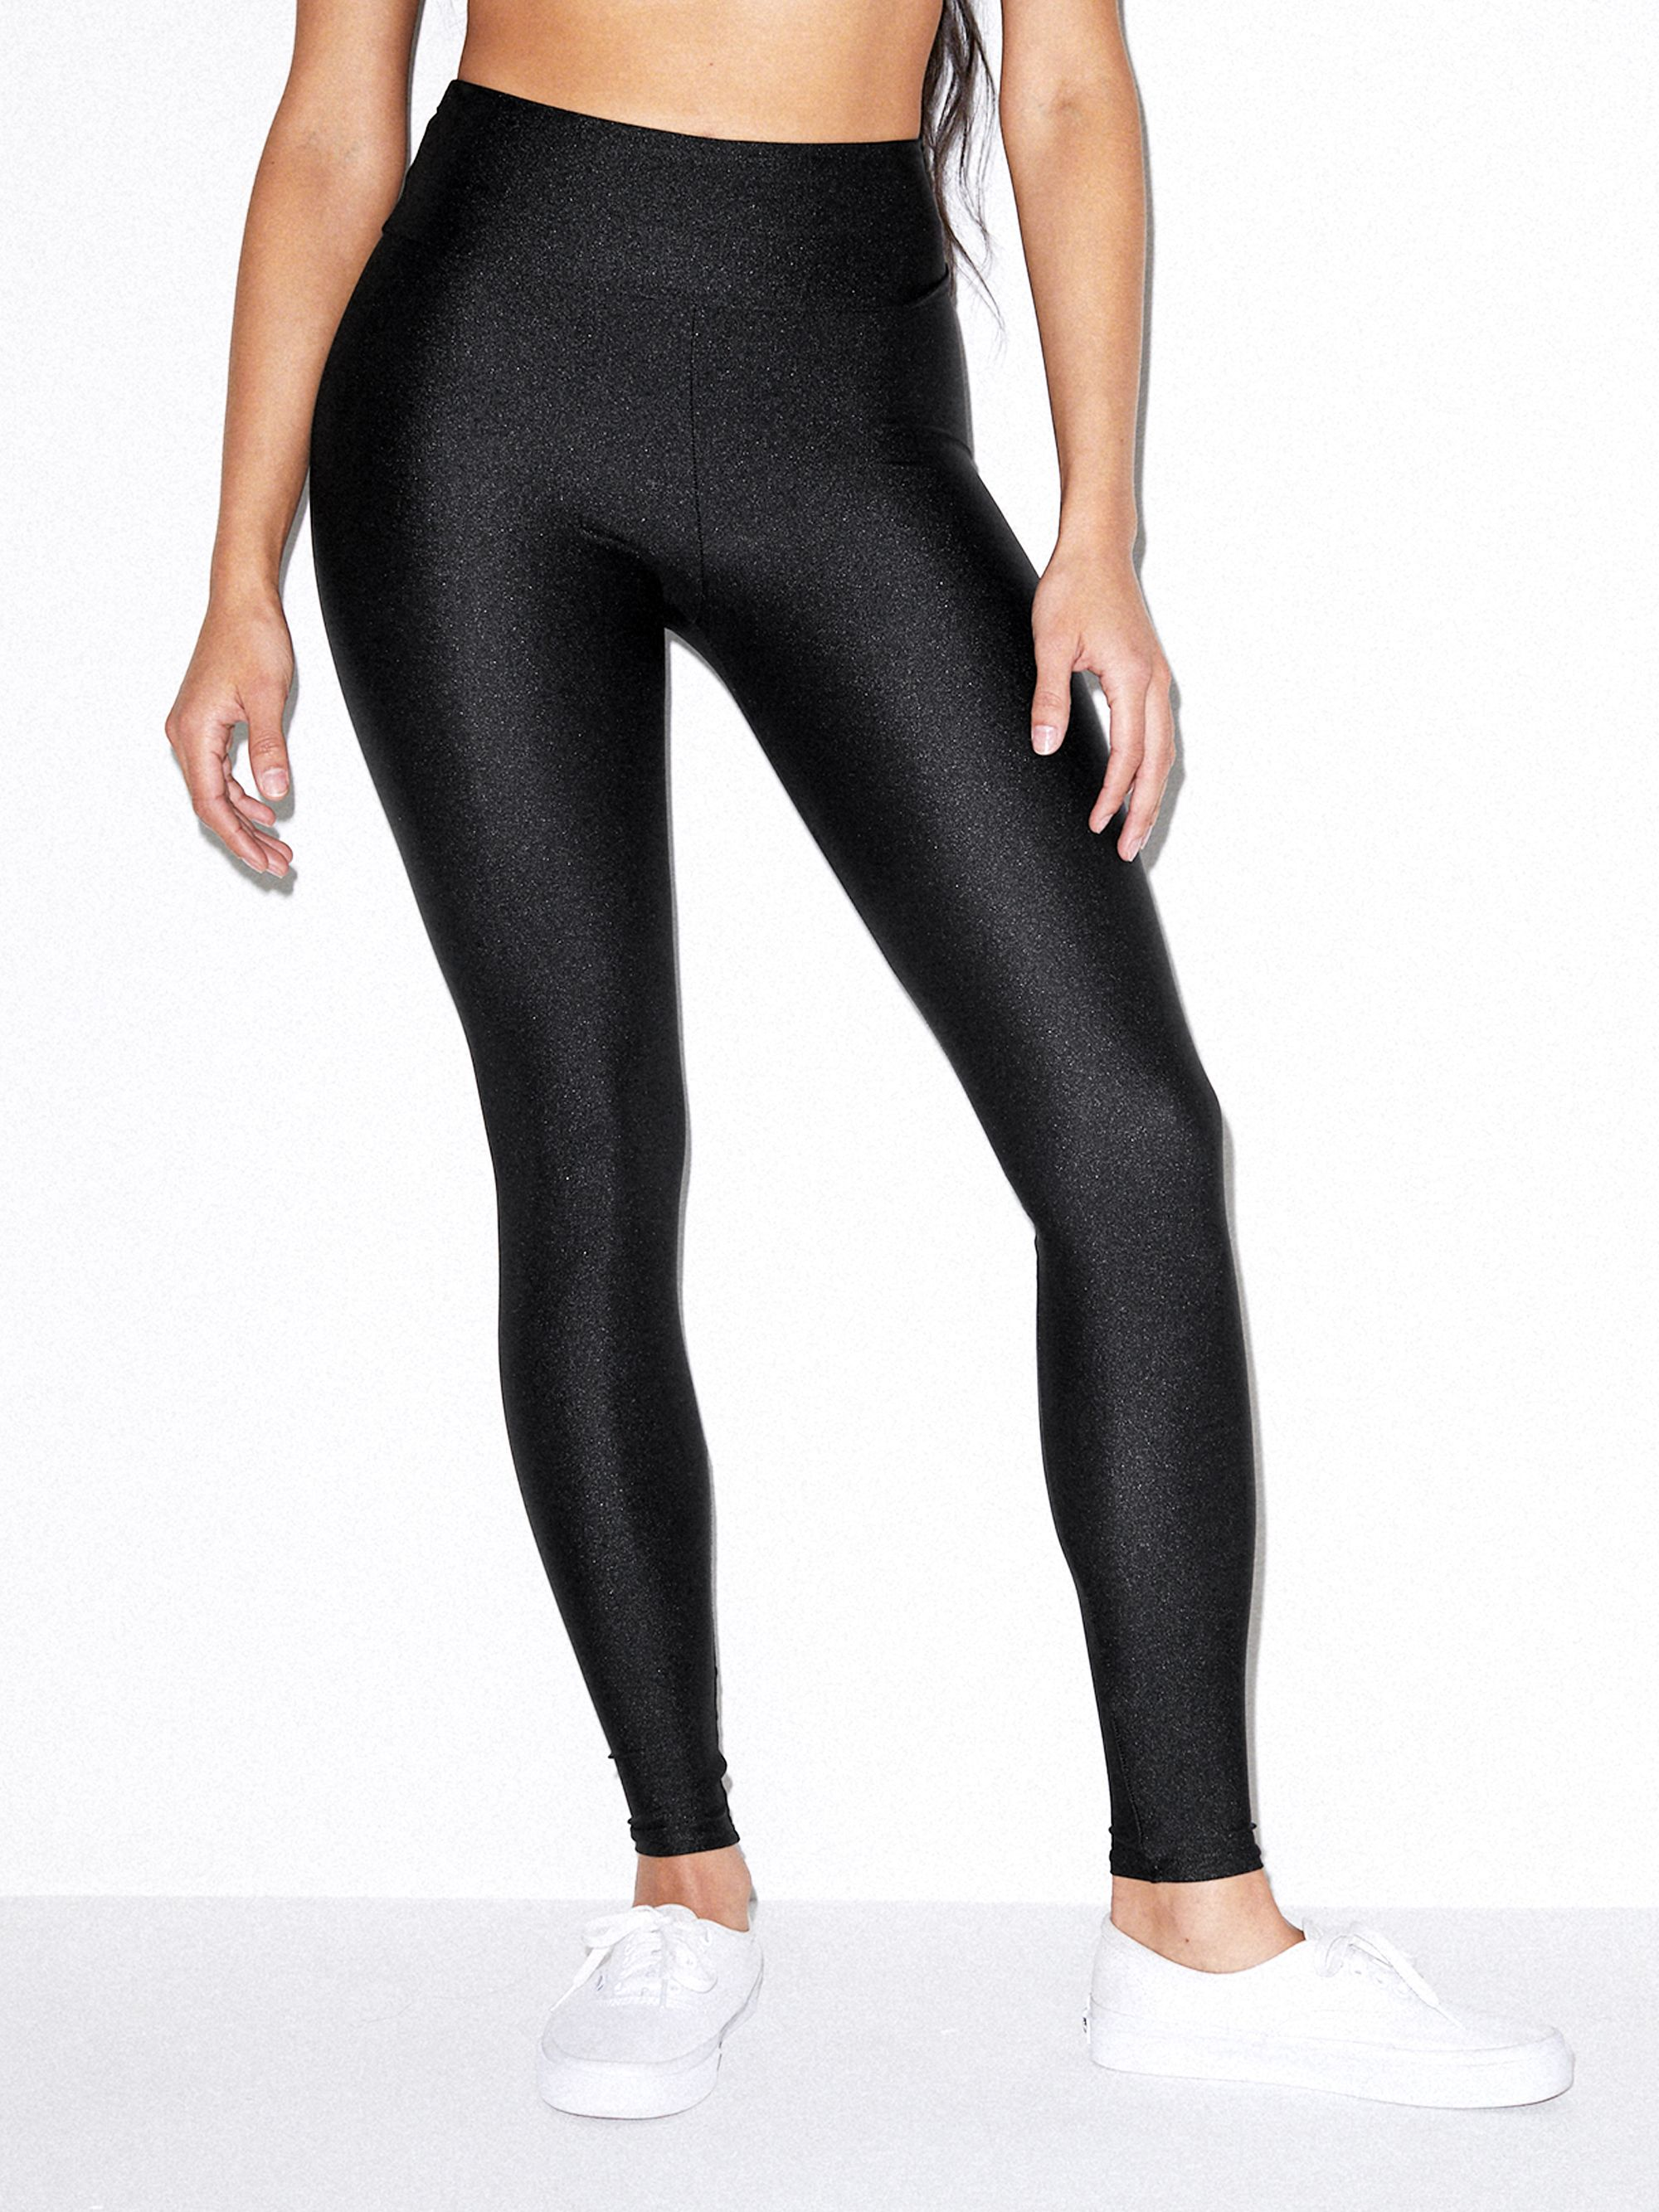 Nylon Tricot High Waist Legging | Tuggl